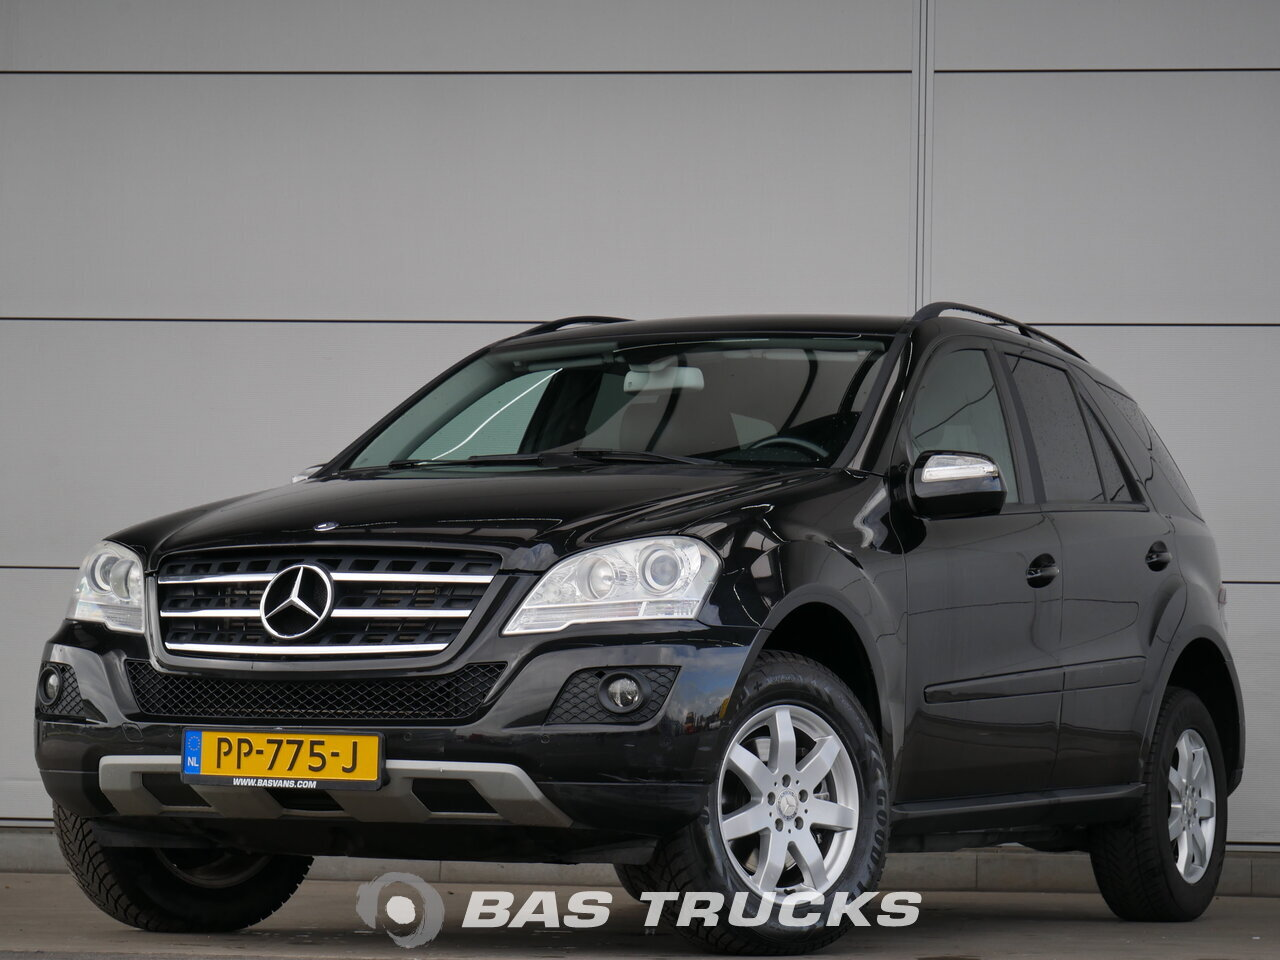 Mercedes ml 280 cdi 4matic car euro norm 0 13500 bas trucks for Mercedes benz suv 2009 price